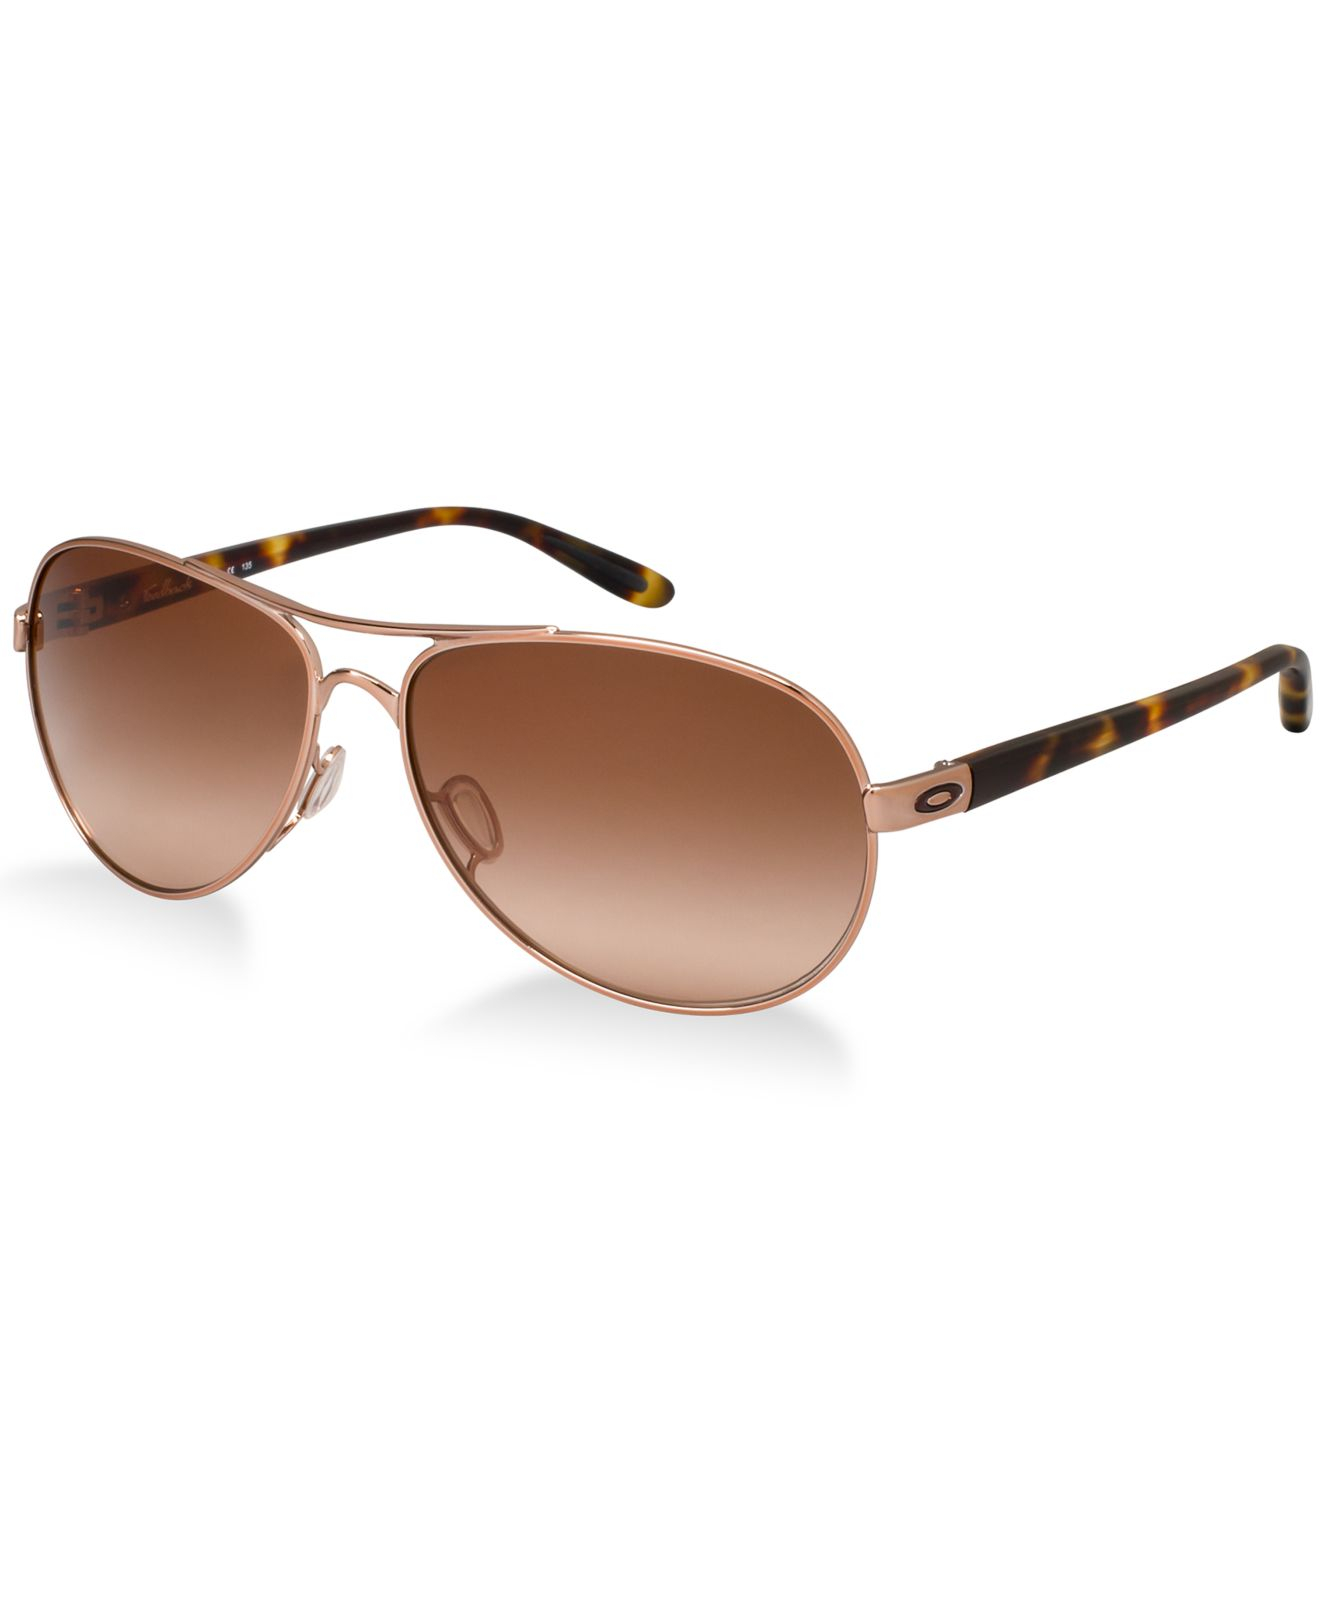 Ray Ban Temples Lettings   City of Kenmore, Washington 35f904aab6